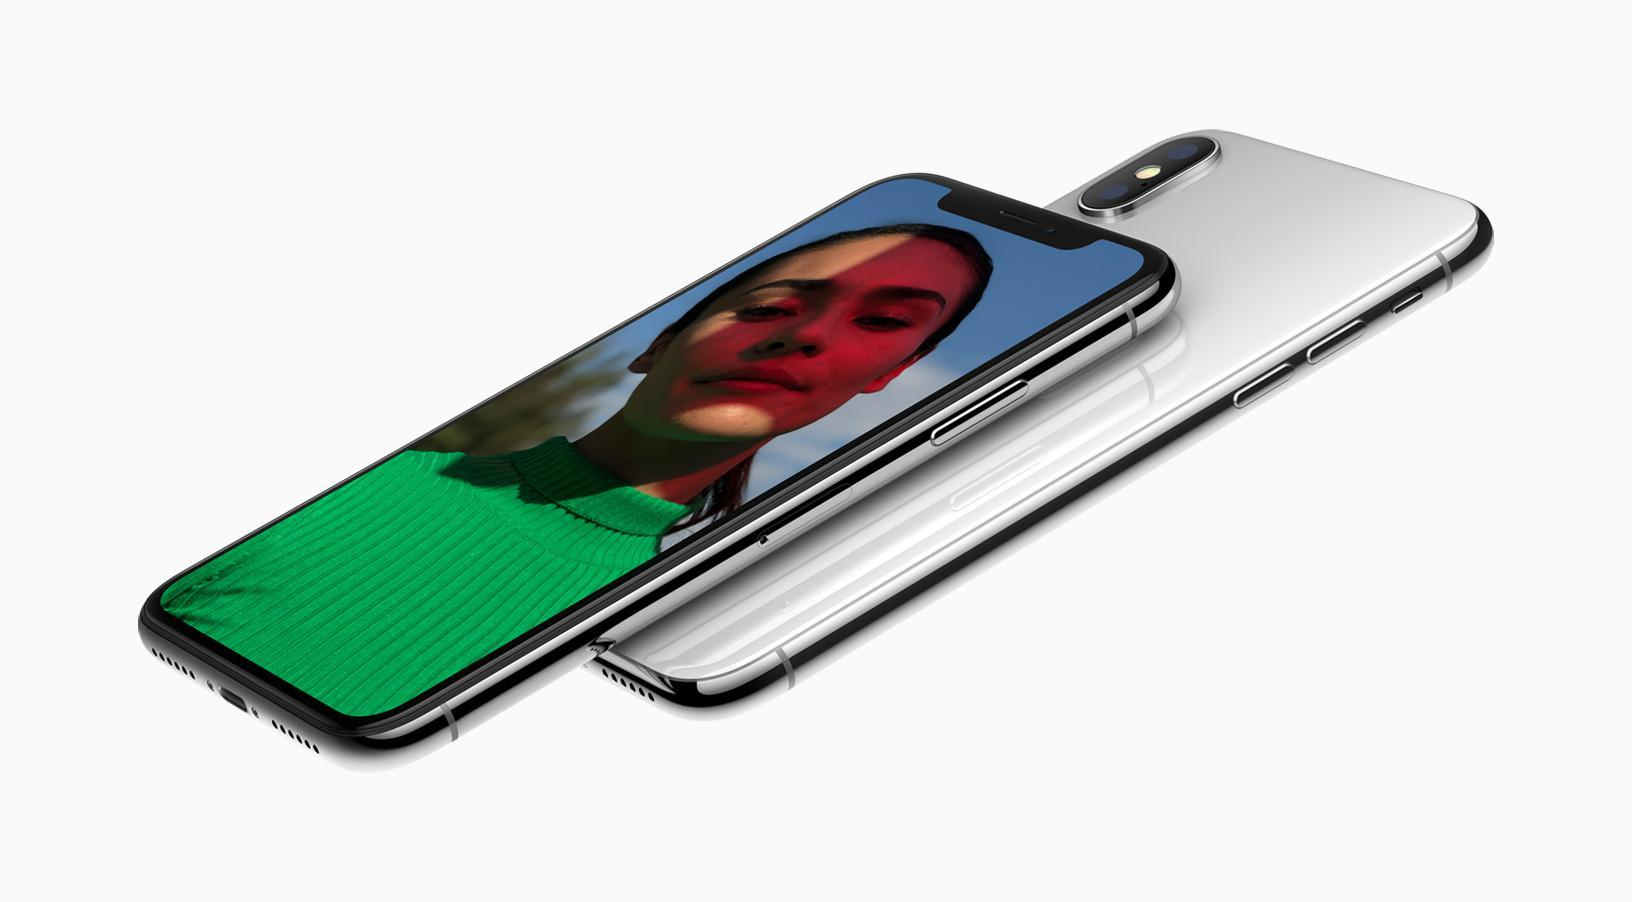 75172aef1cbccaecb798c682940ab500 Apple's iPhone X shipments could drop by 10 MILLION as demand for the £1k device plummets post-Christmas, experts predict